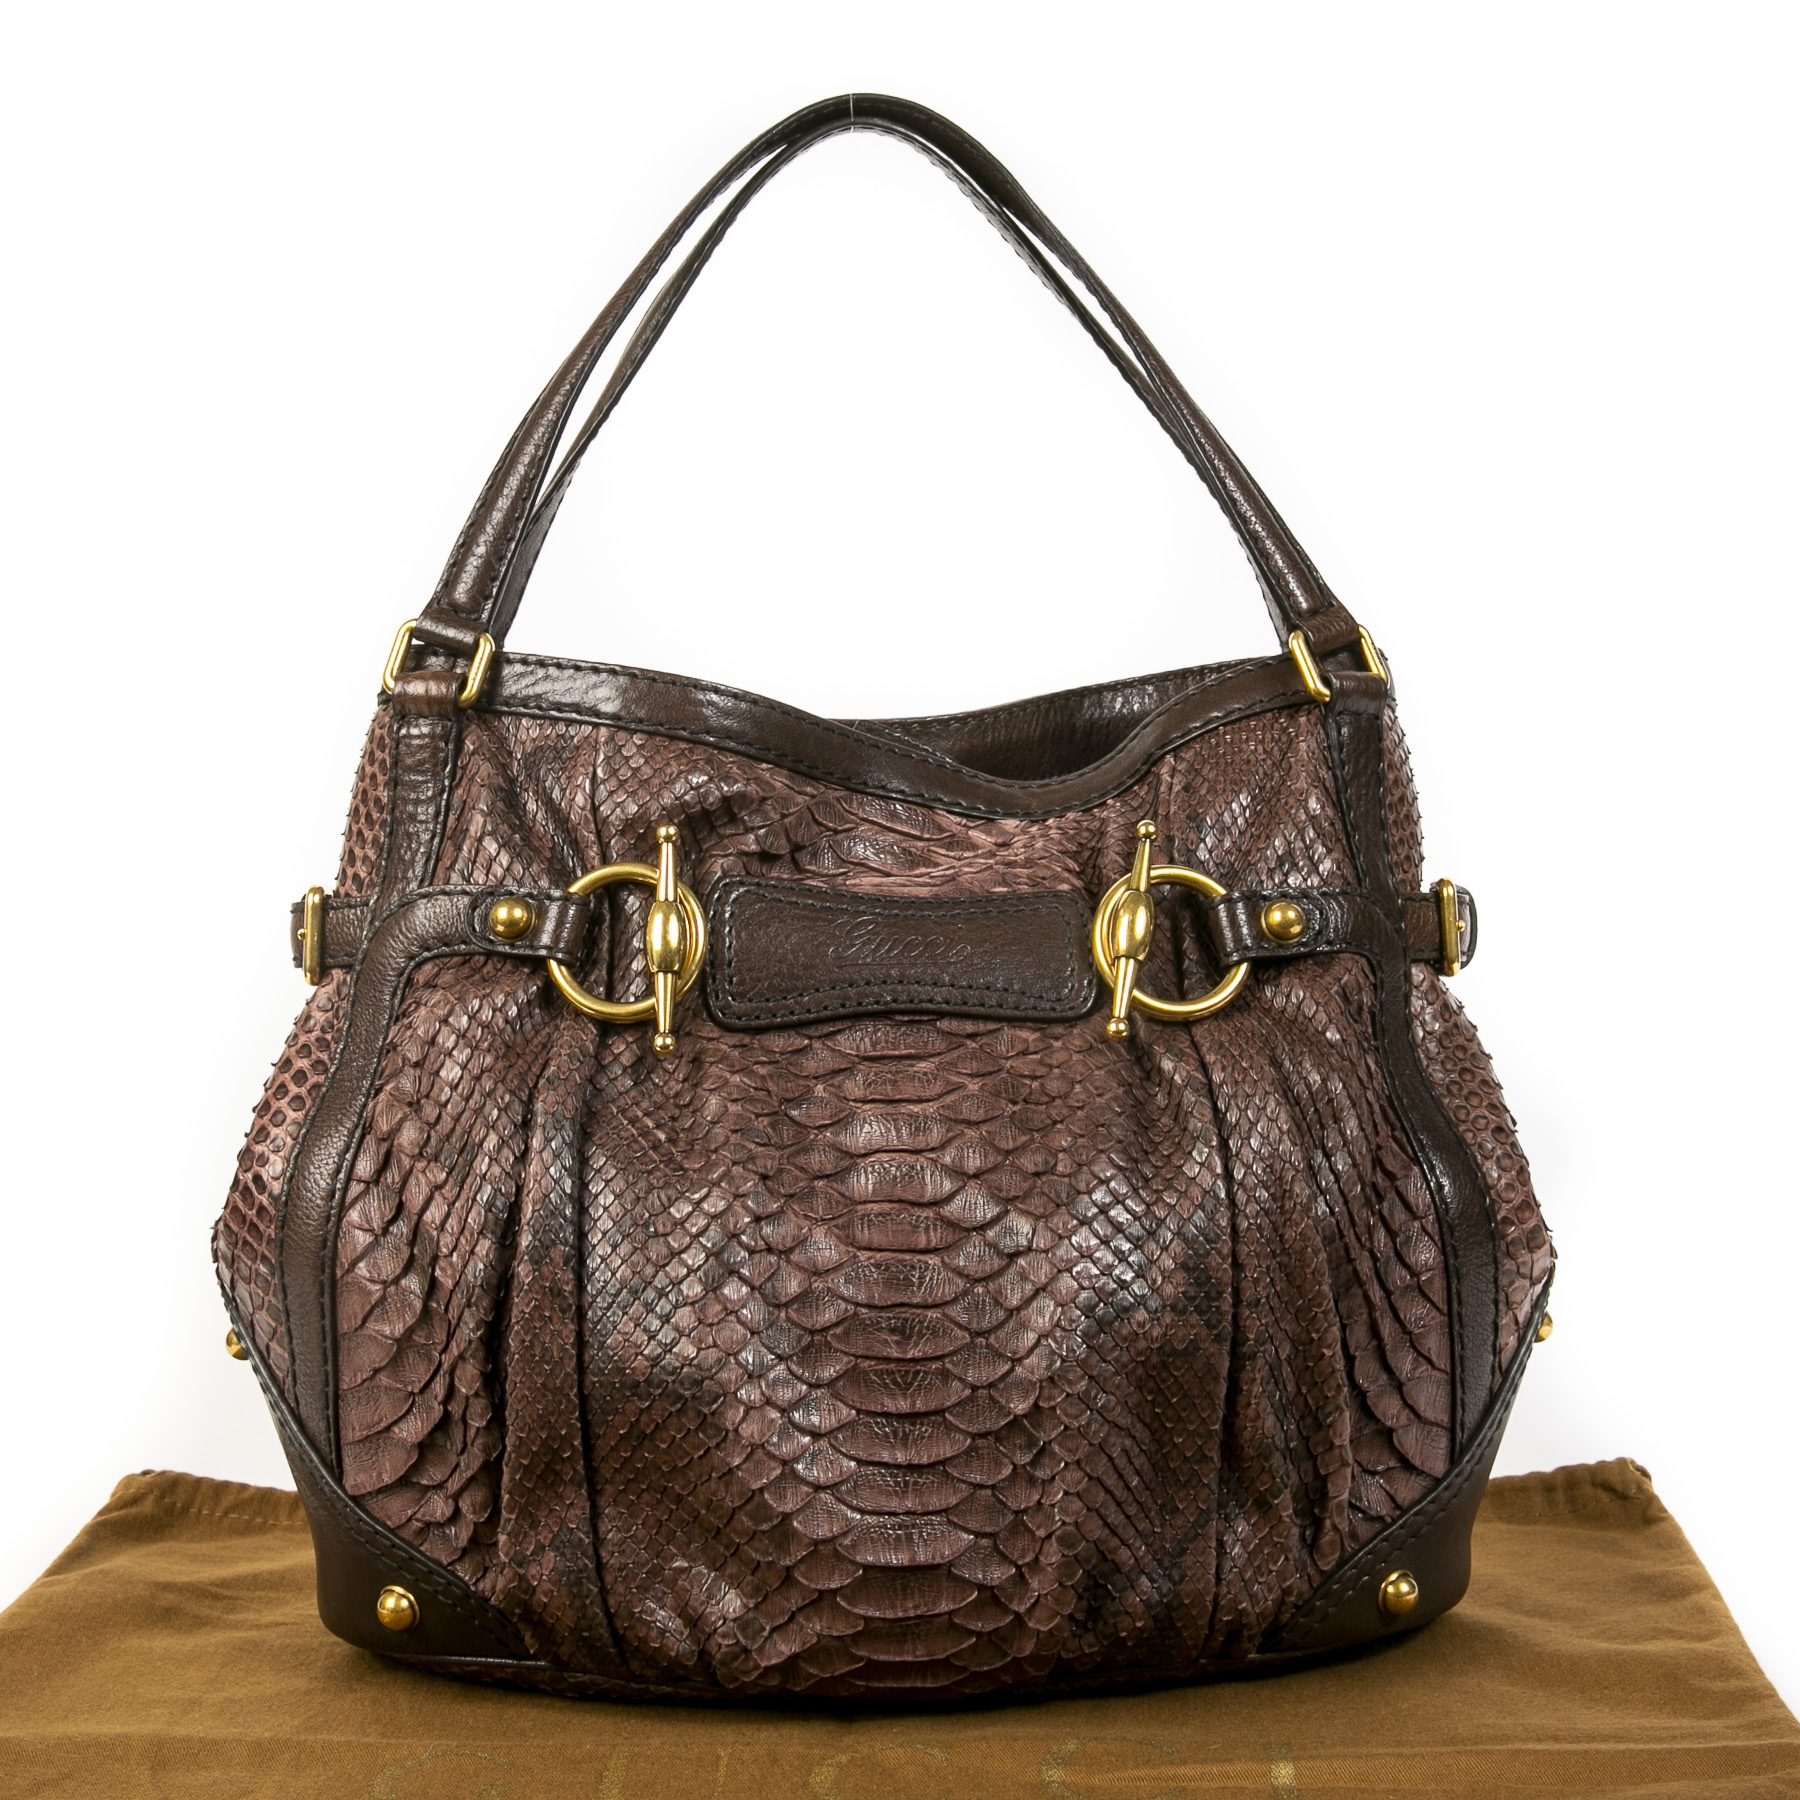 Gucci Python Jockey Hobo Bag for the best price at Labellov secondhand luxury